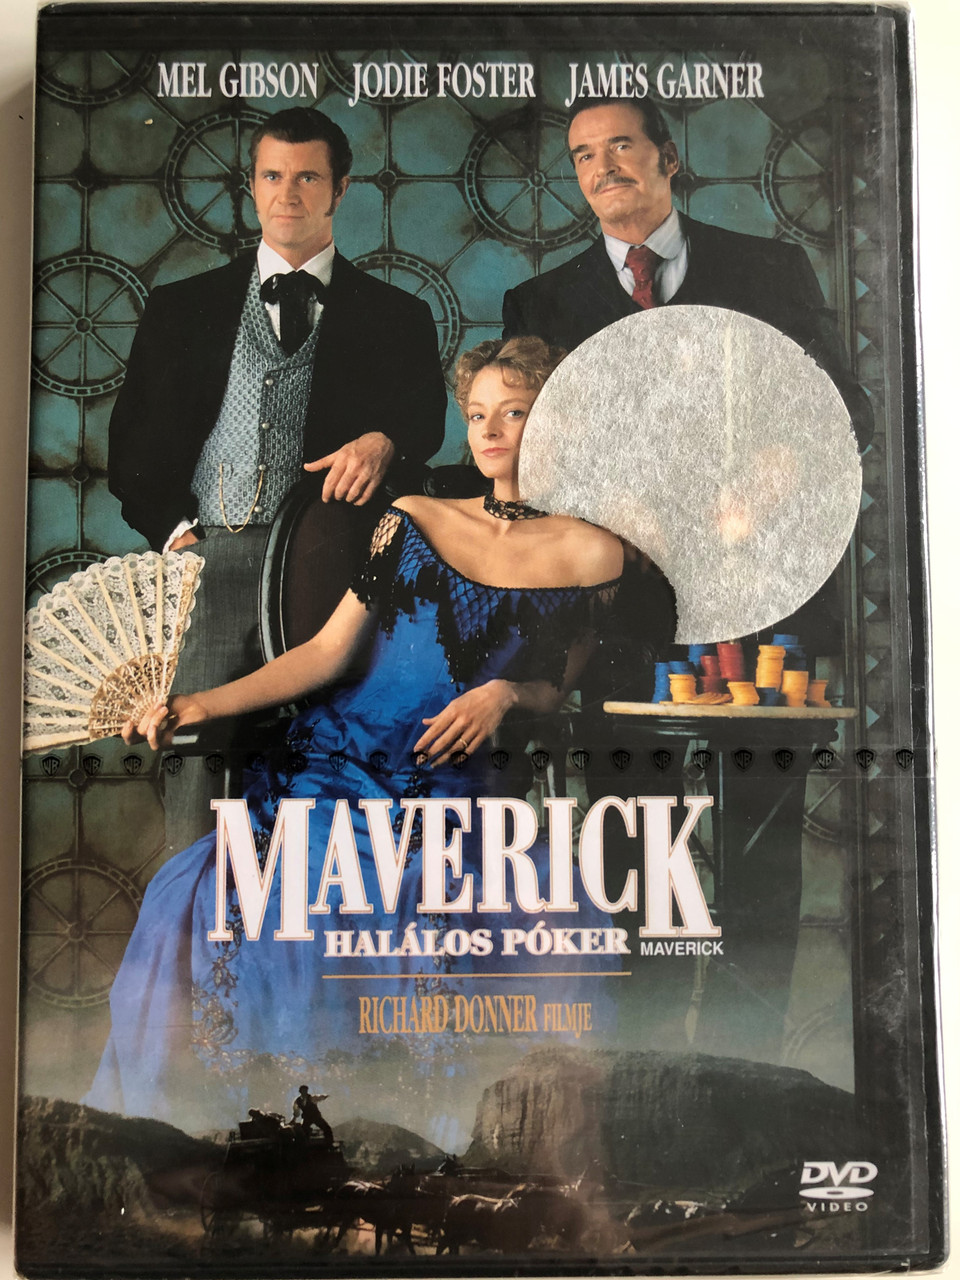 Maverick Dvd 1994 Maverick Halalos Poker Directed By Richard Donner Starring Mel Gibson Jodie Foster James Garner Graham Greene Bibleinmylanguage